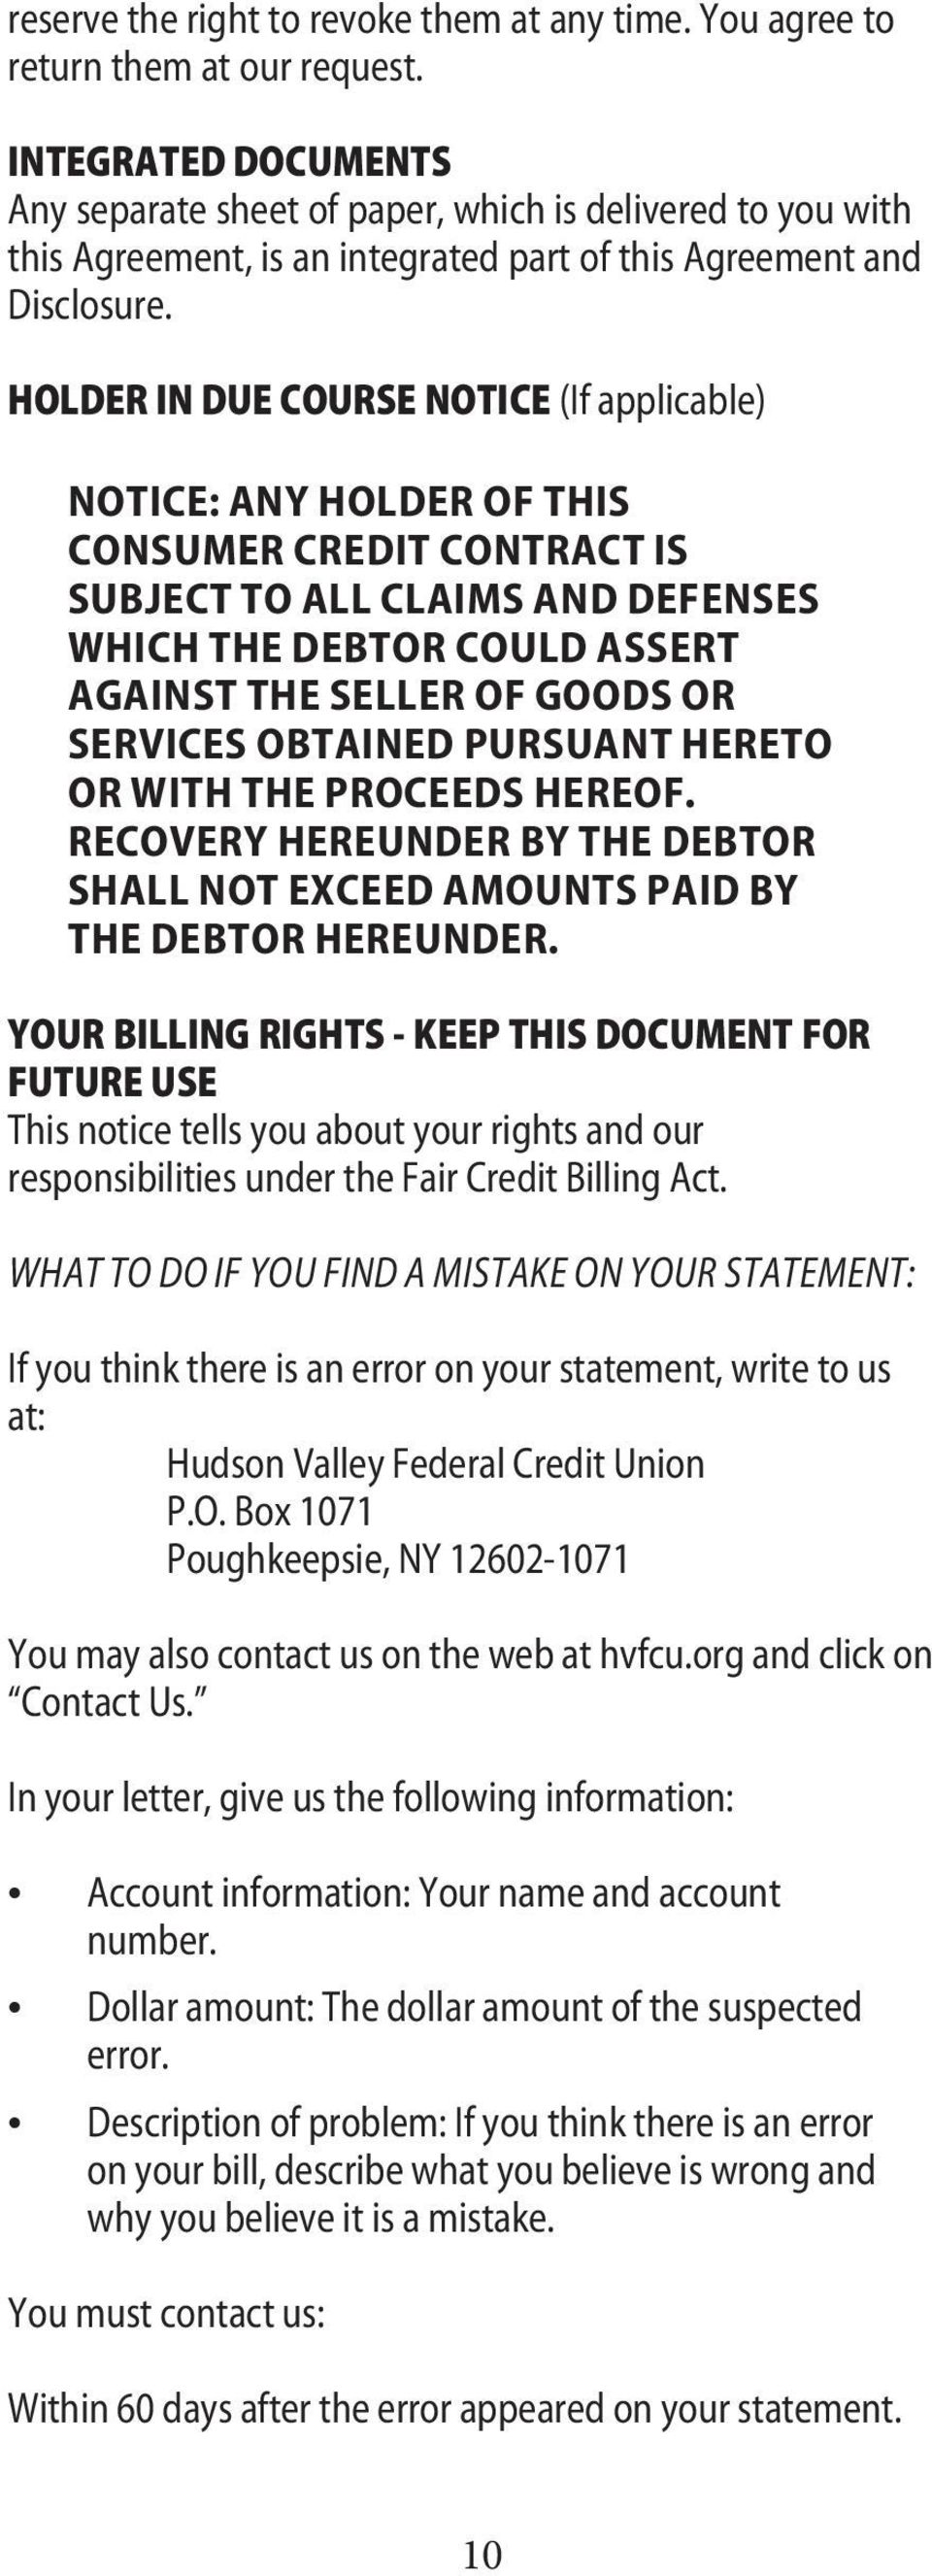 HOLDER IN DUE COURSE NOTICE (If applicable) NOTICE: ANY HOLDER OF THIS CONSUMER CREDIT CONTRACT IS SUBJECT TO ALL CLAIMS AND DEFENSES WHICH THE DEBTOR COULD ASSERT AGAINST THE SELLER OF GOODS OR